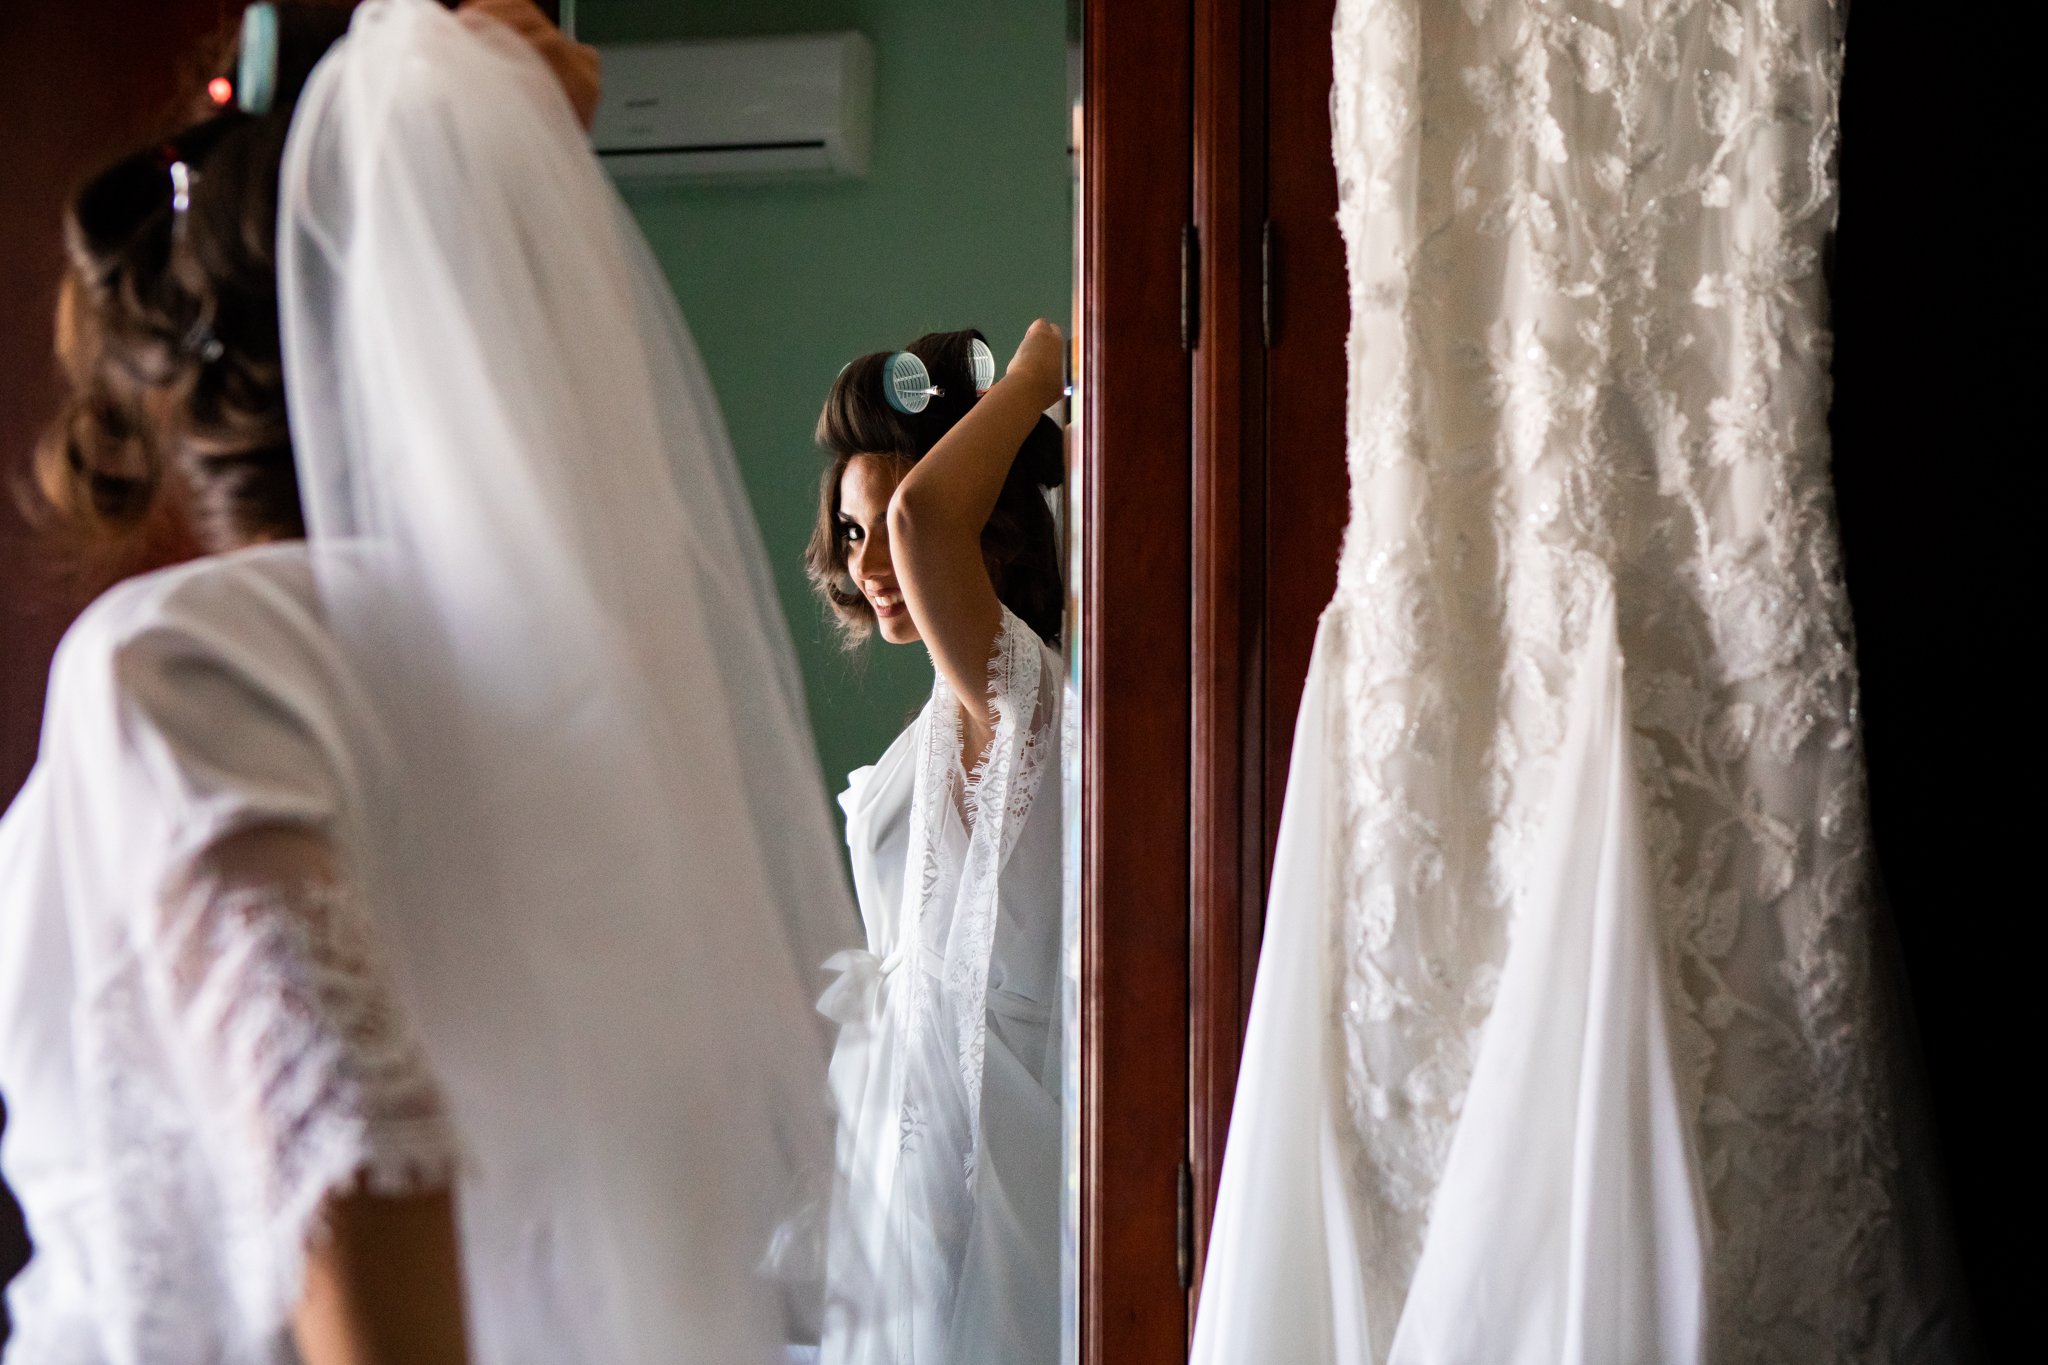 Best-wedding-photographer-in-Sicily-2.jpg